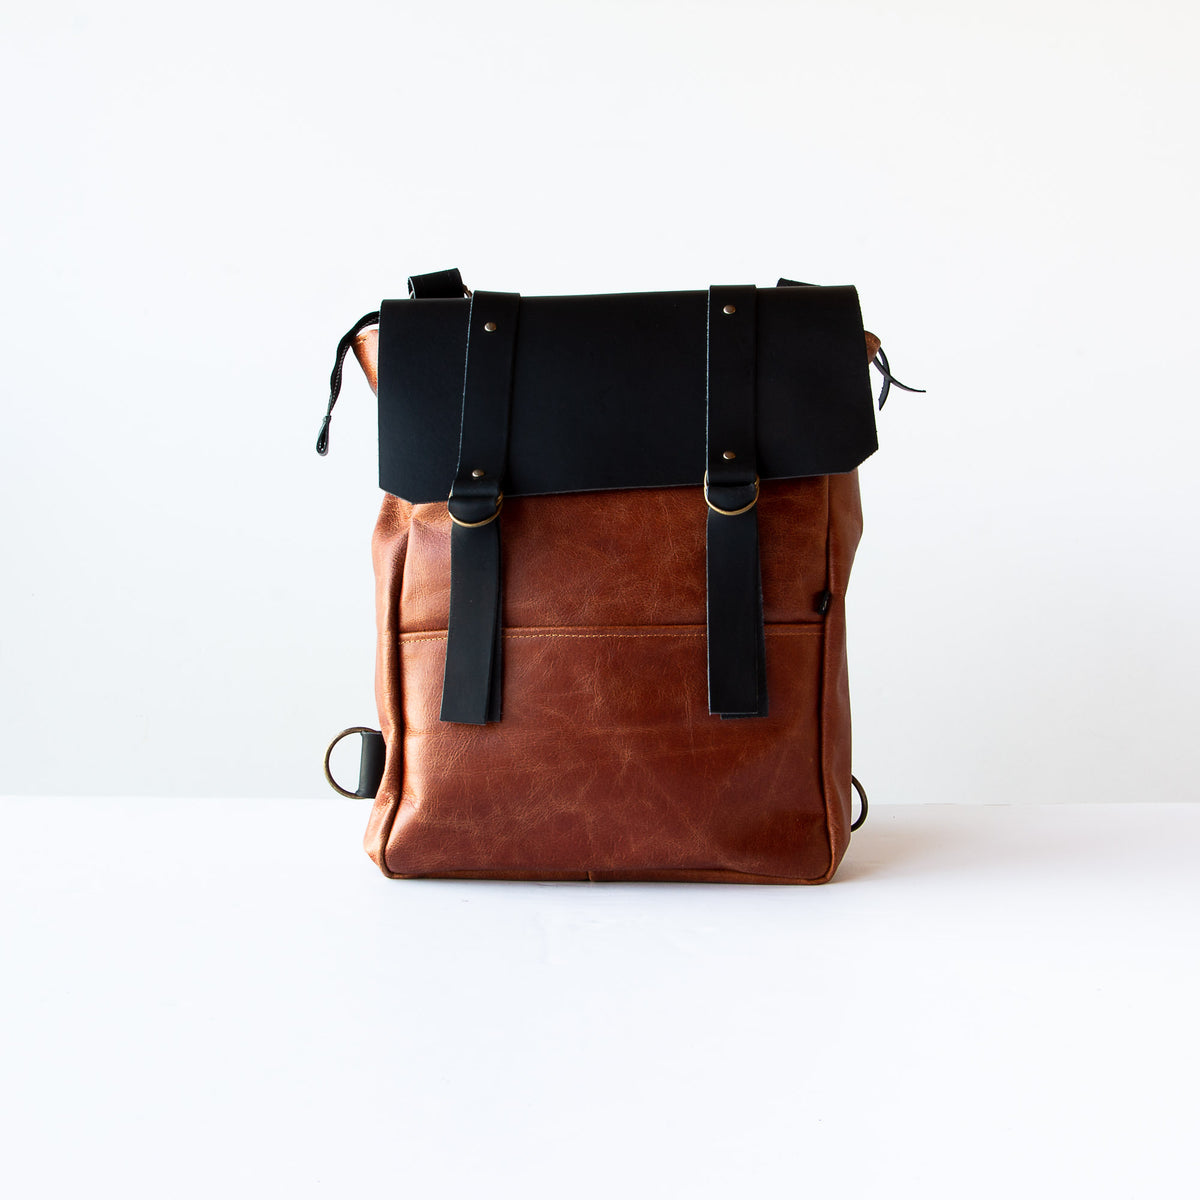 Caramel & Black Handcrafted Leather Backpack / Crossbody Bag - Sold by Chic & Basta